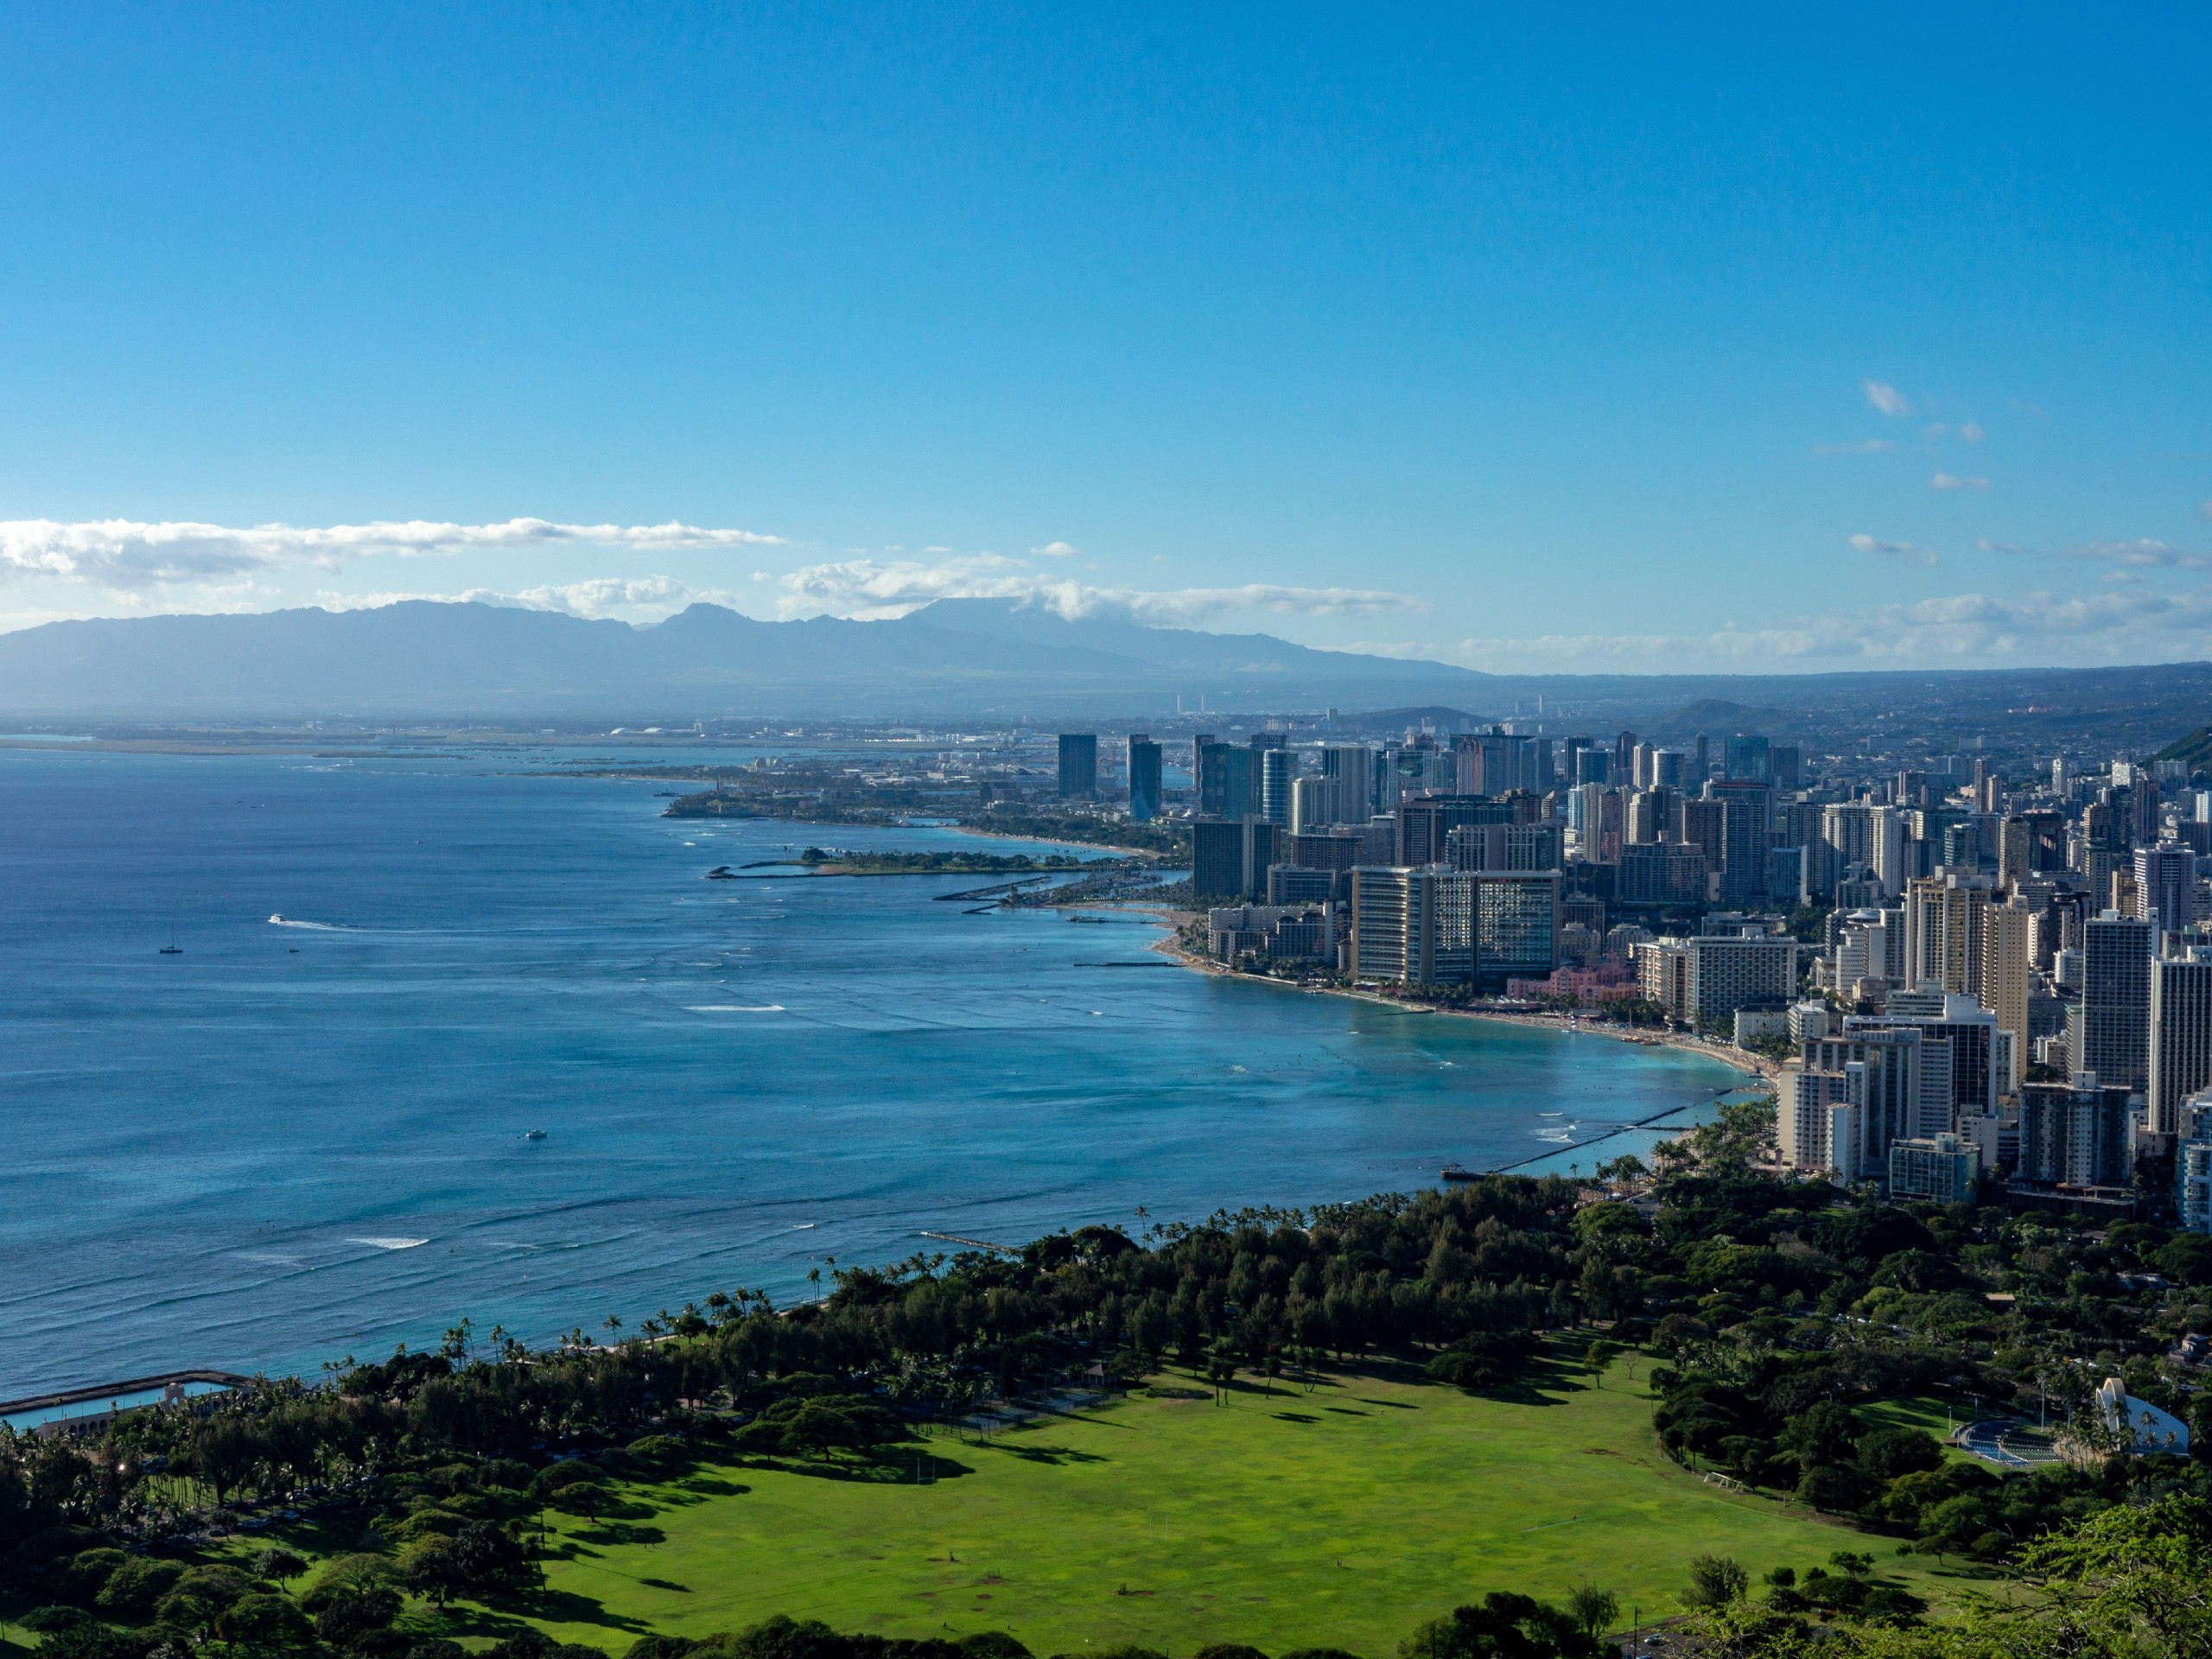 Honolulu as seen from the above